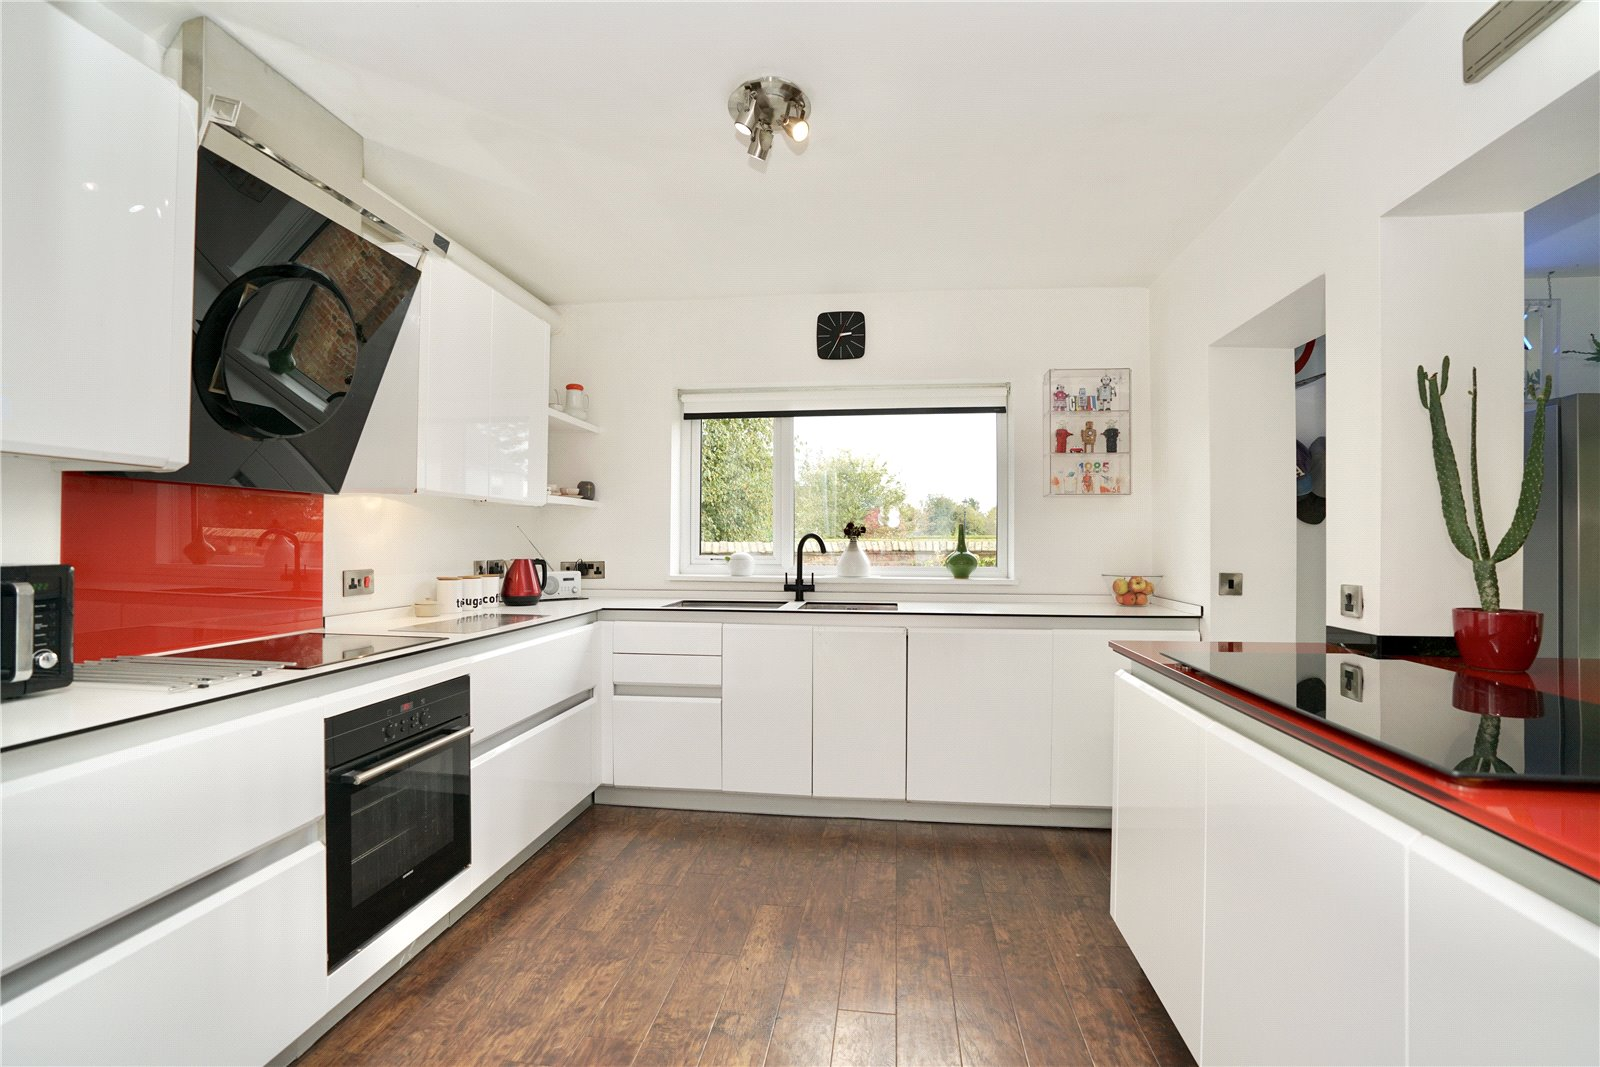 4 bed house for sale in Eaton Socon 4